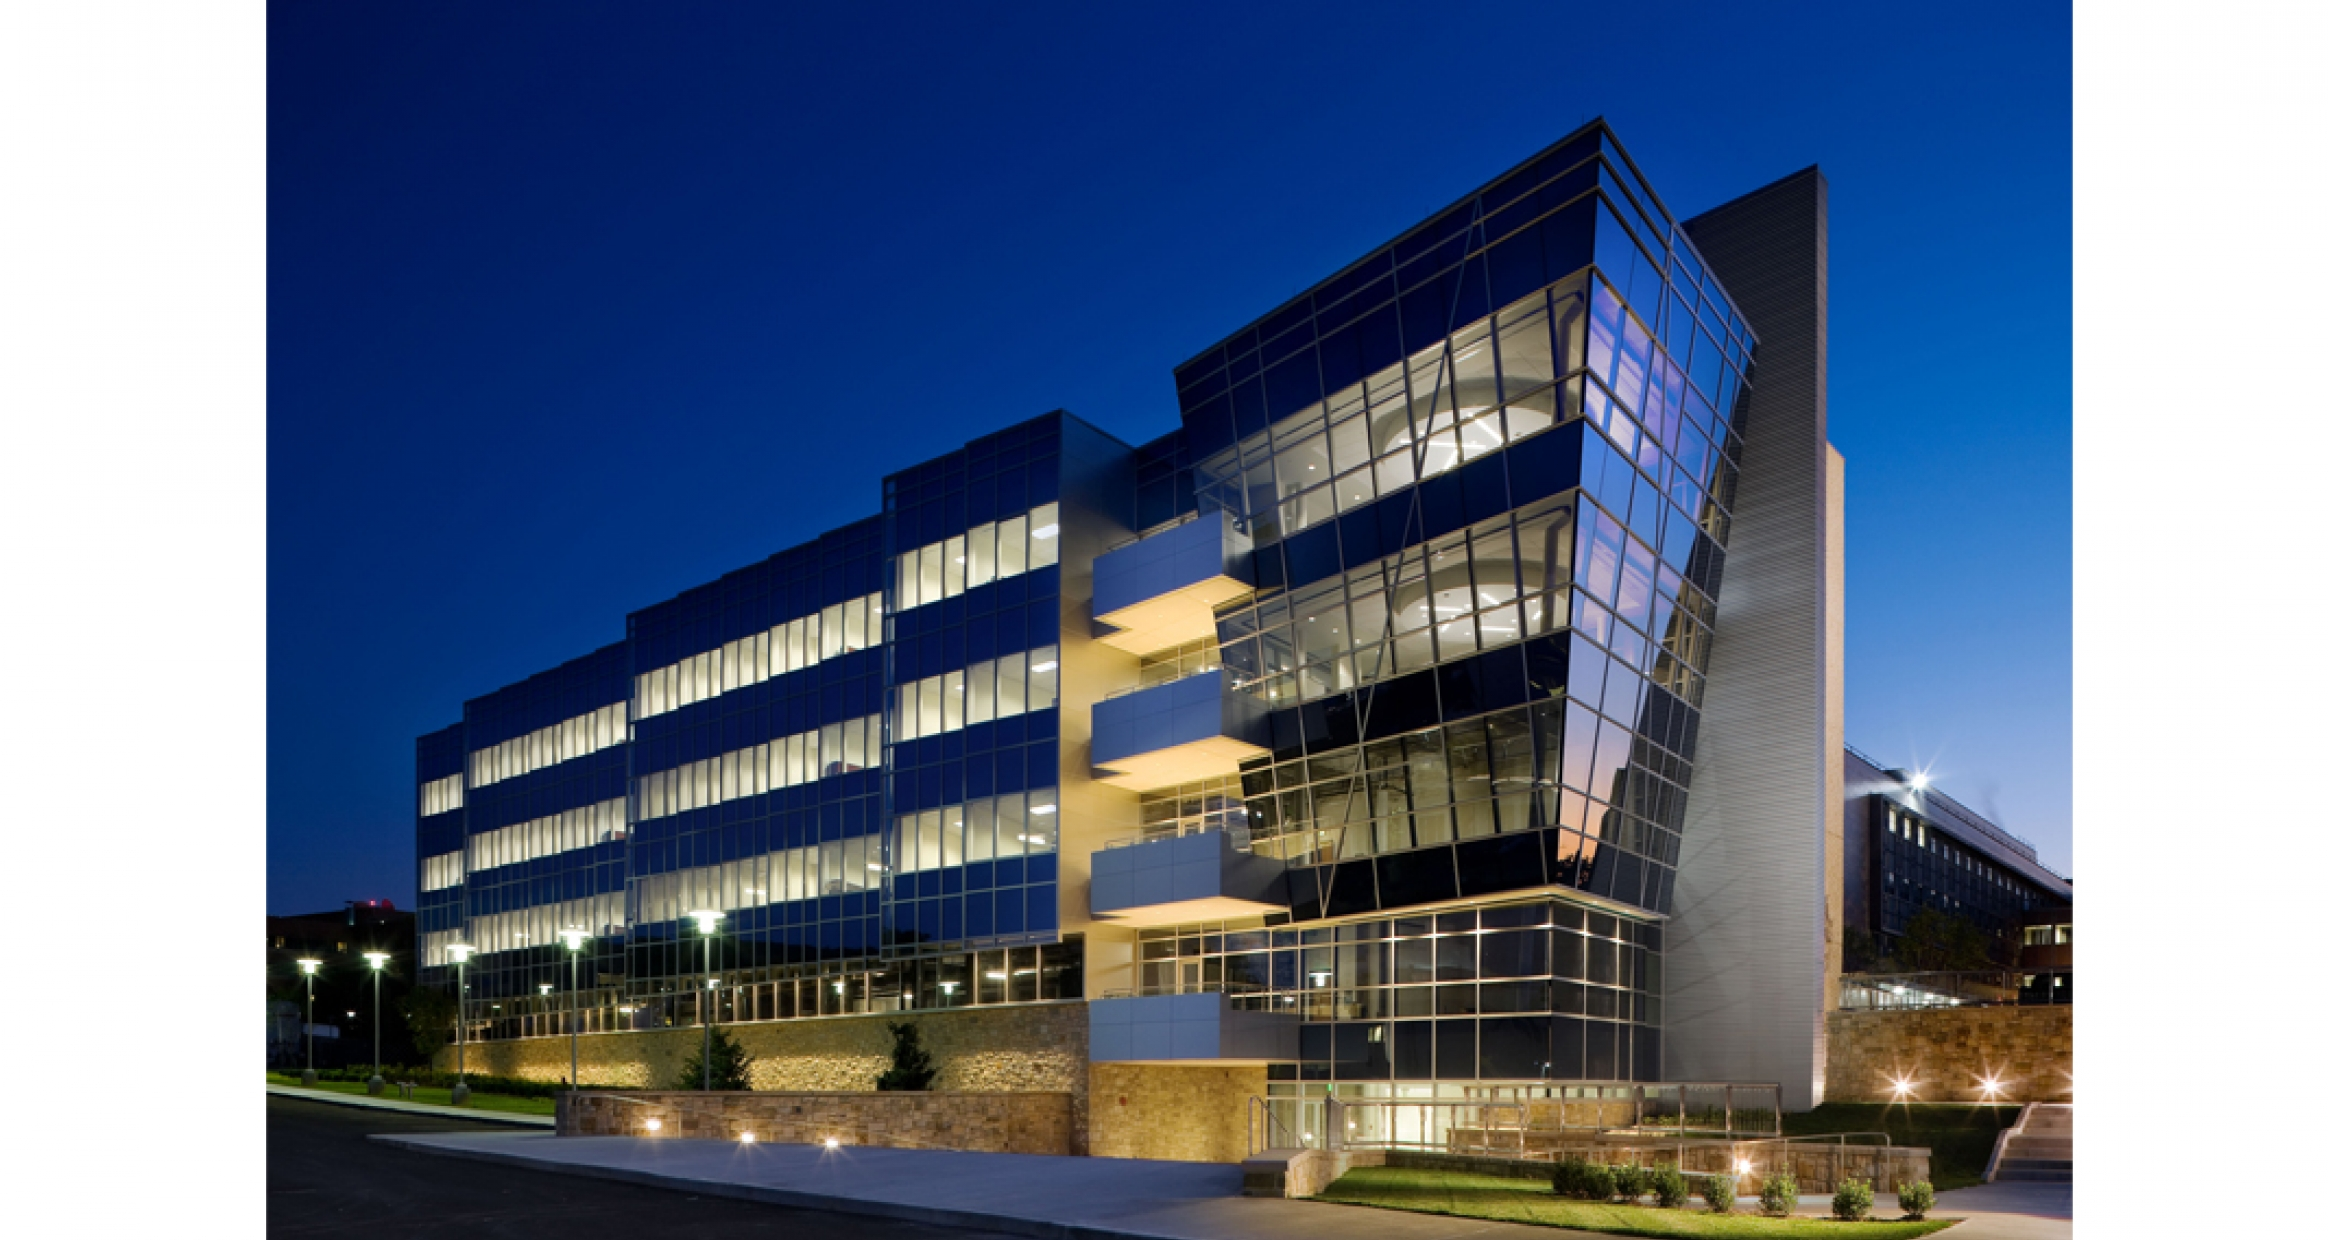 West Virginia University, Biomedical & Neurosciences Research Center